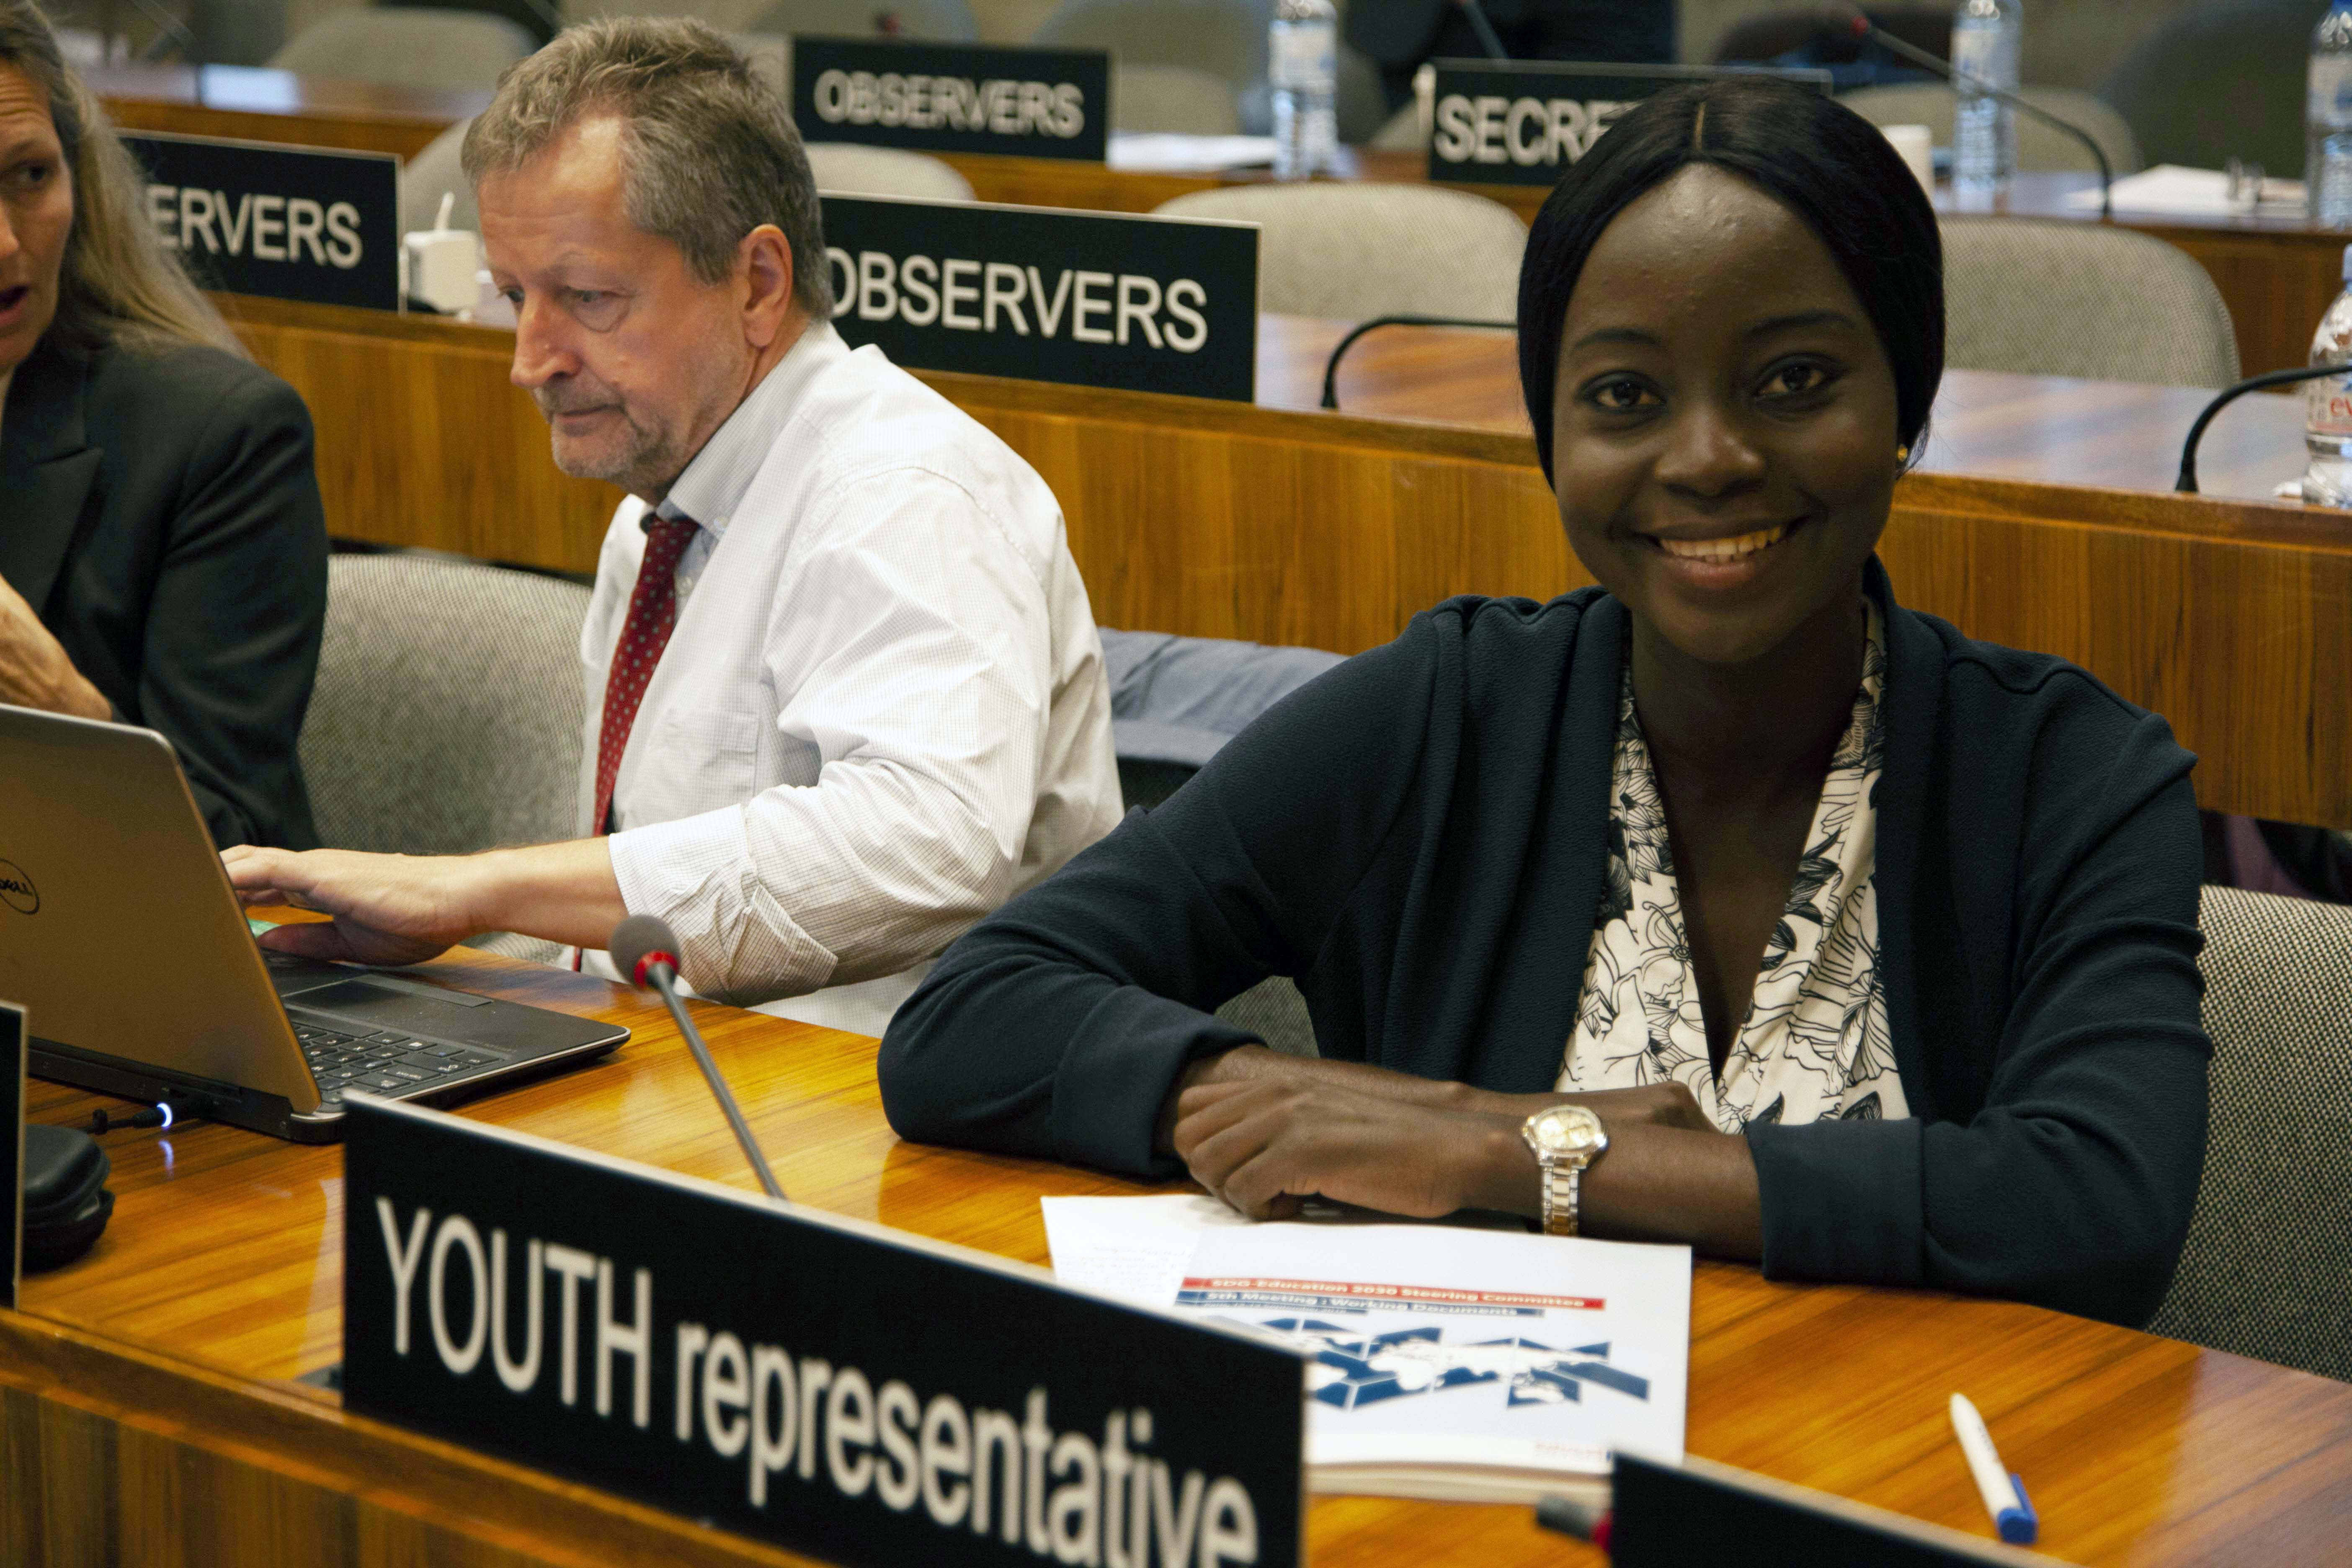 Victoria Ibiwoye Youth Representative of the SDG-Education 2030 Steering Committee c UNESCO